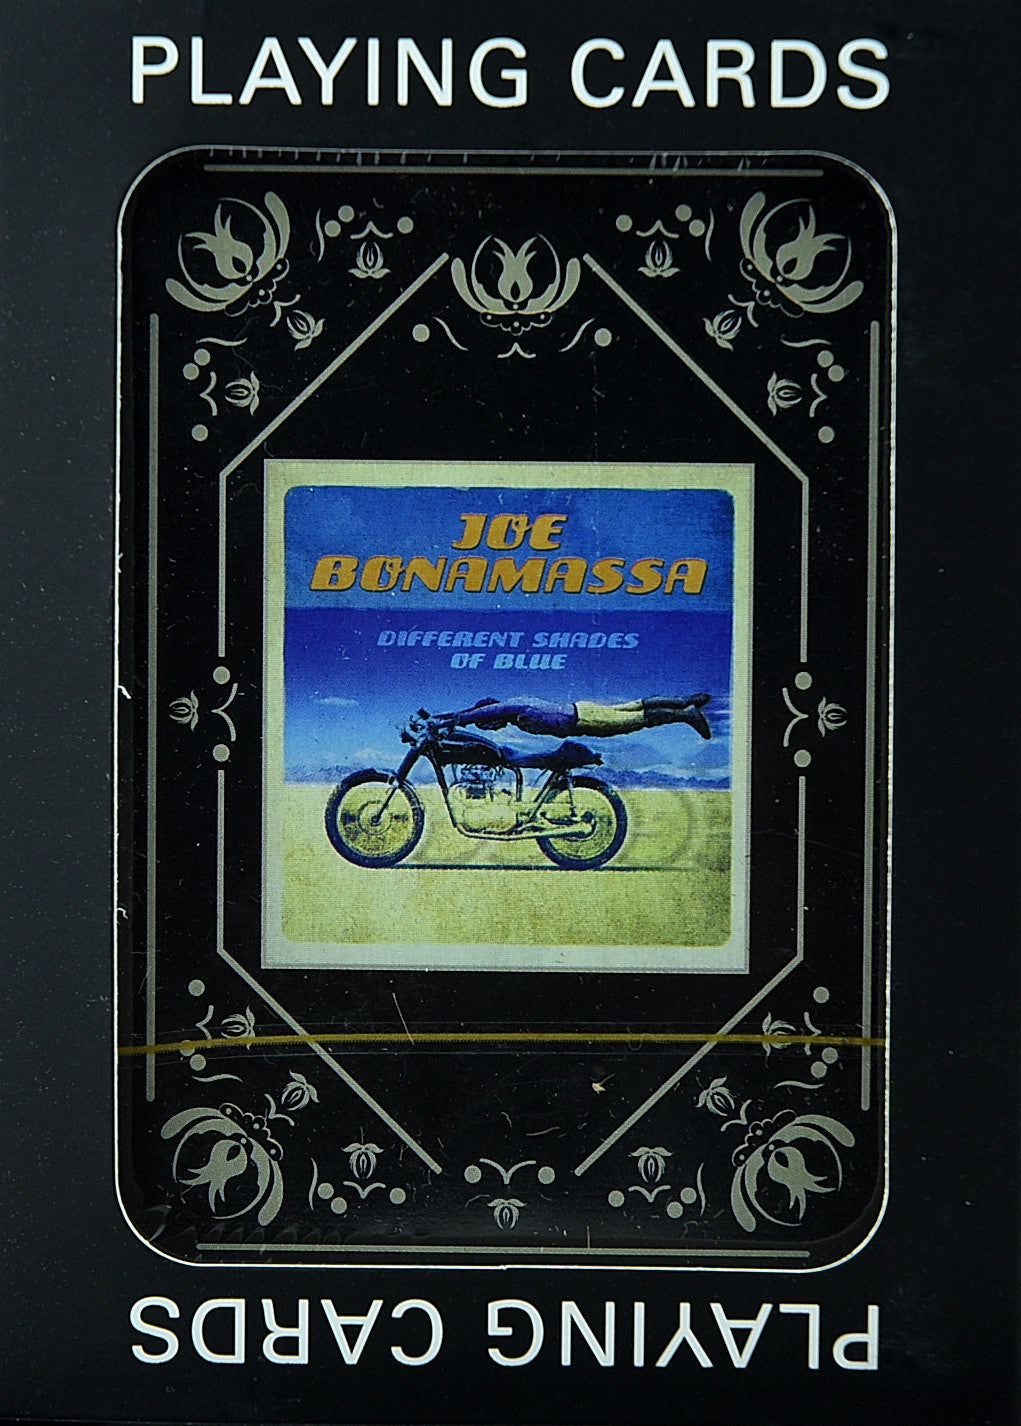 Joe Bonamassa Playing Cards - Different Shades Of Blue Single Deck